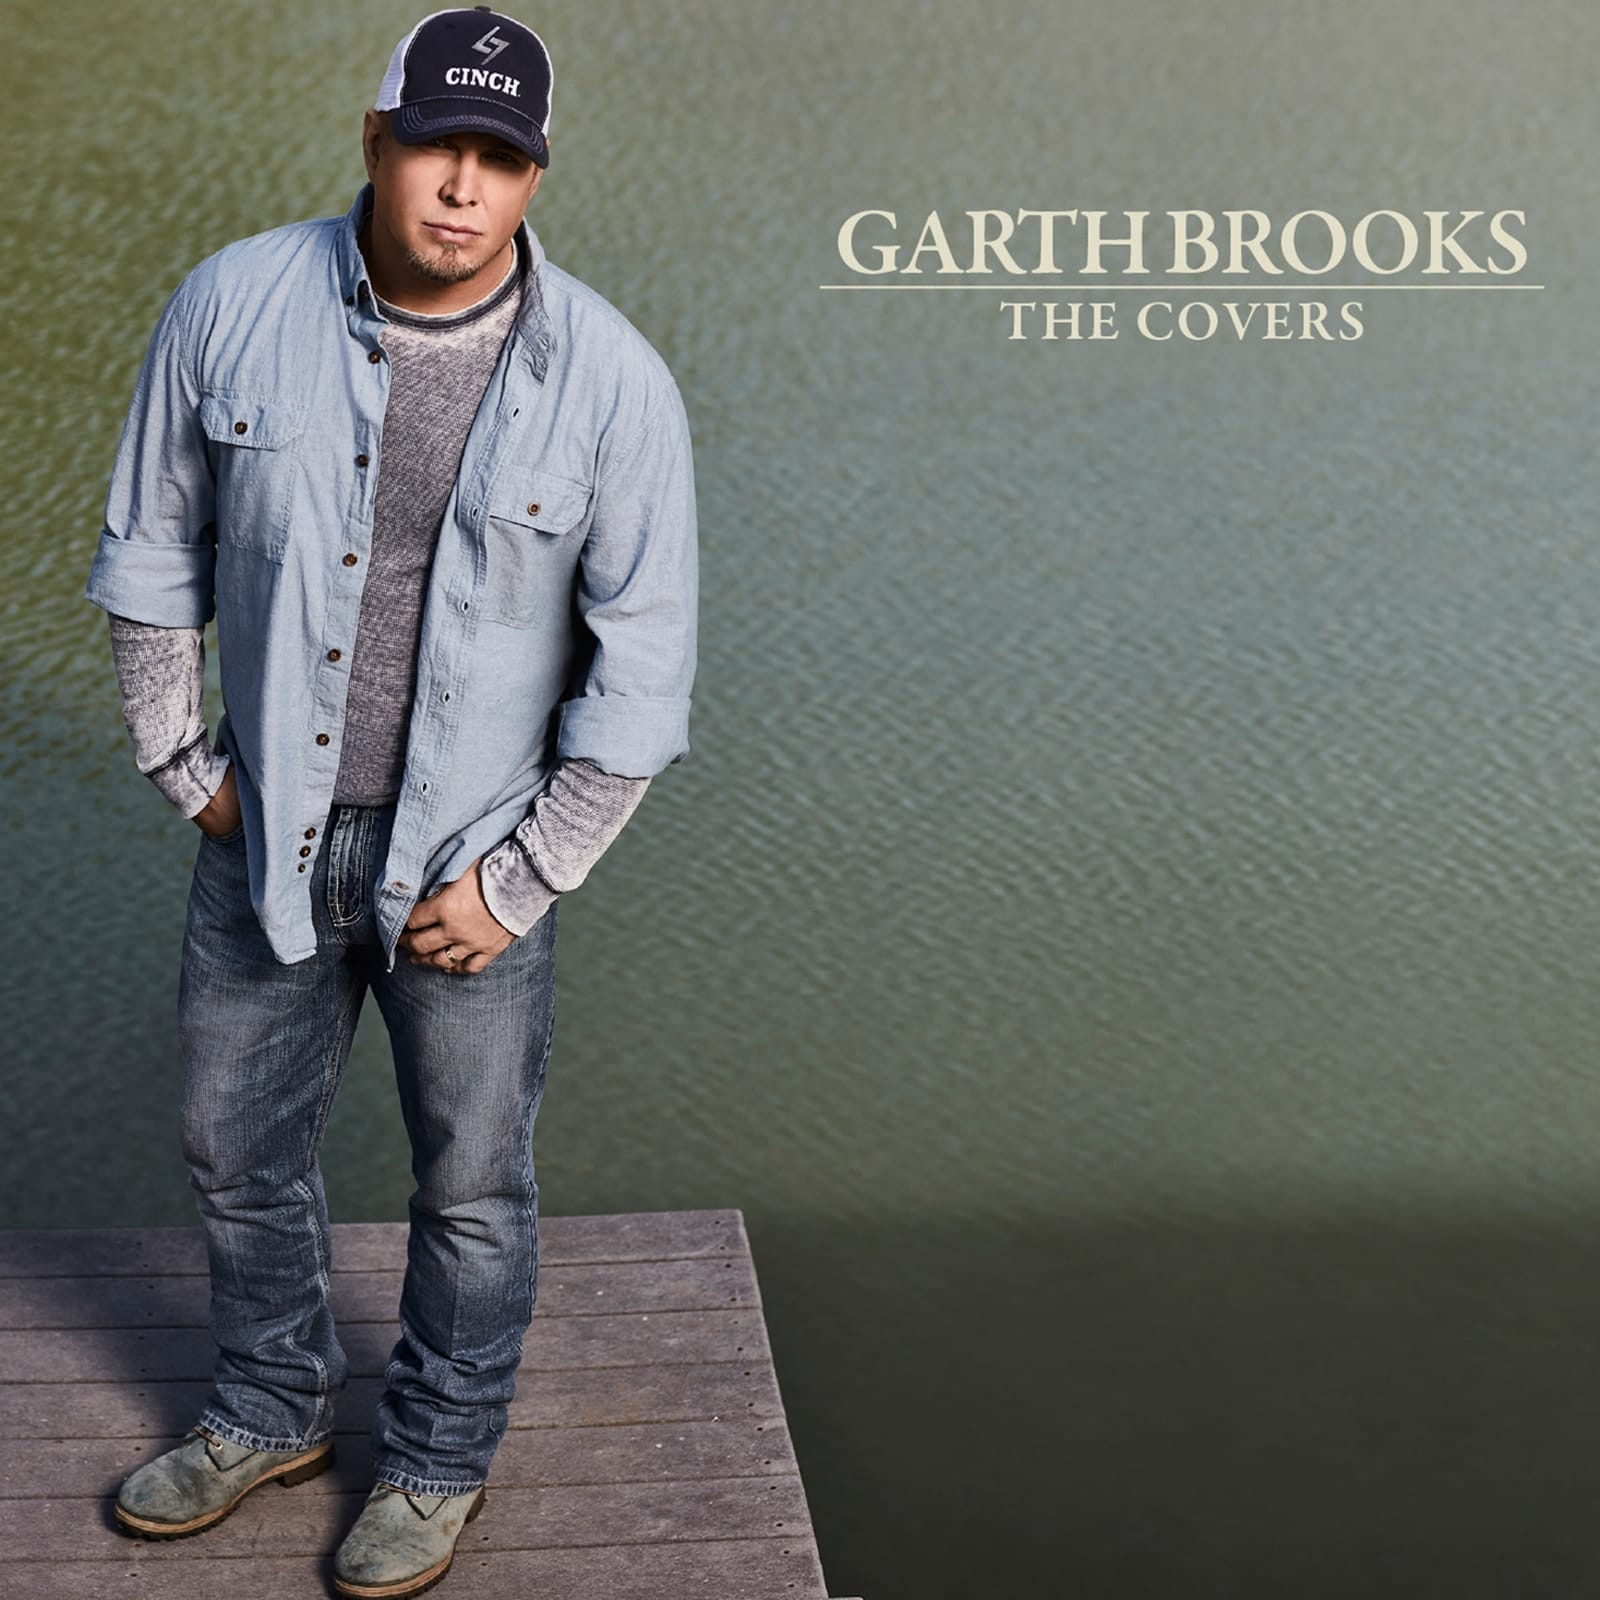 Garth Brooks: The Ultimate Collection Album Covers